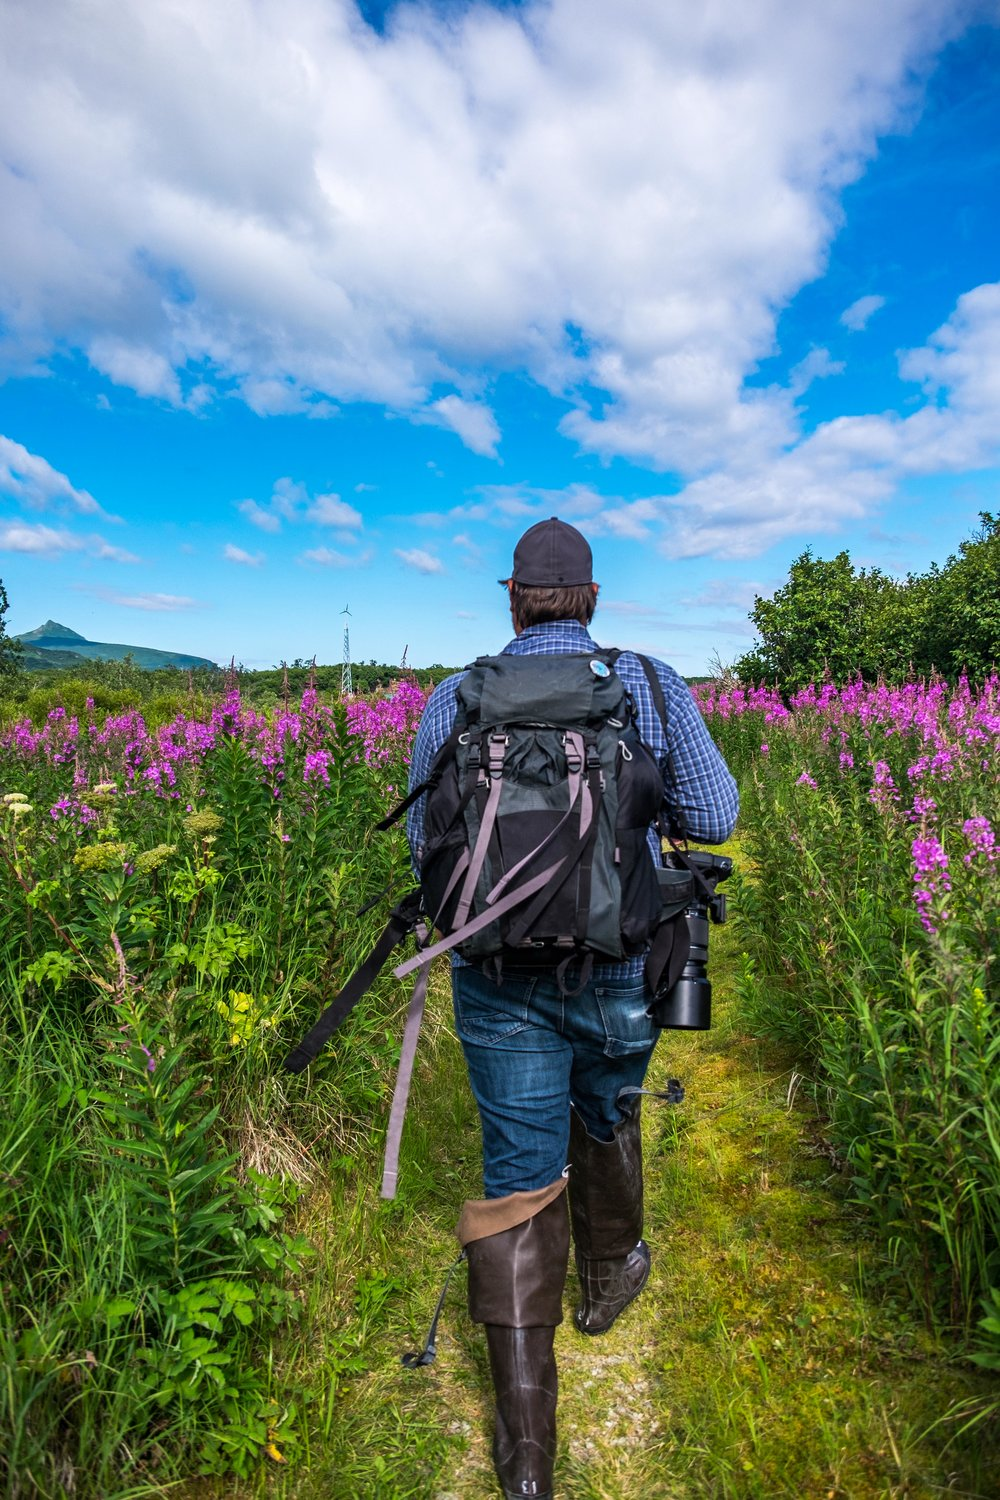 Jonathan Irish hikes through vibrant fireweed on his way to the boat at the Katmai Wilderness Lodge on the Shelikof Straight.